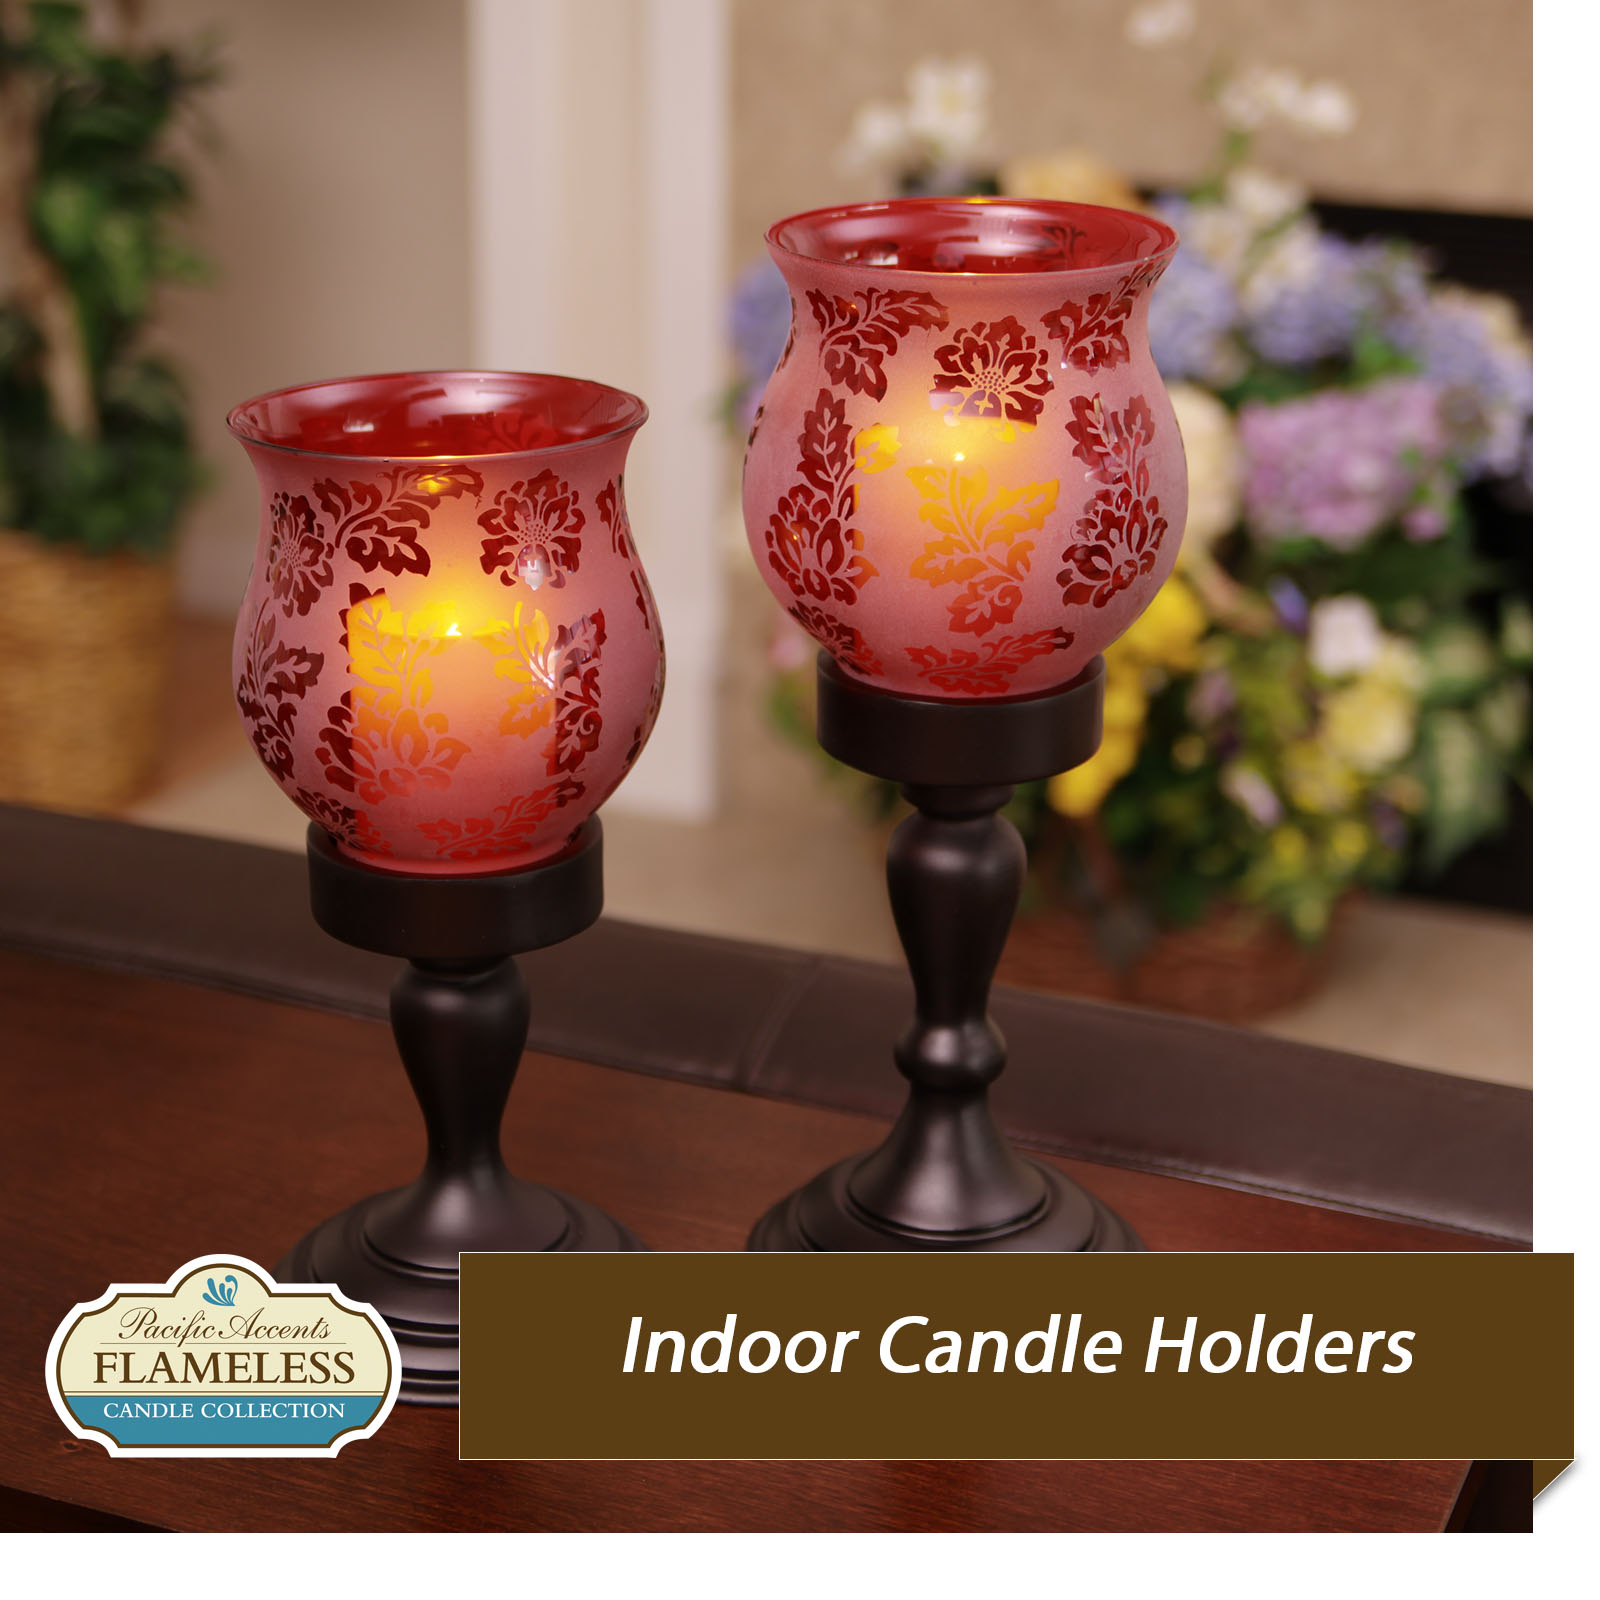 Flameless Indoor Candle Holders